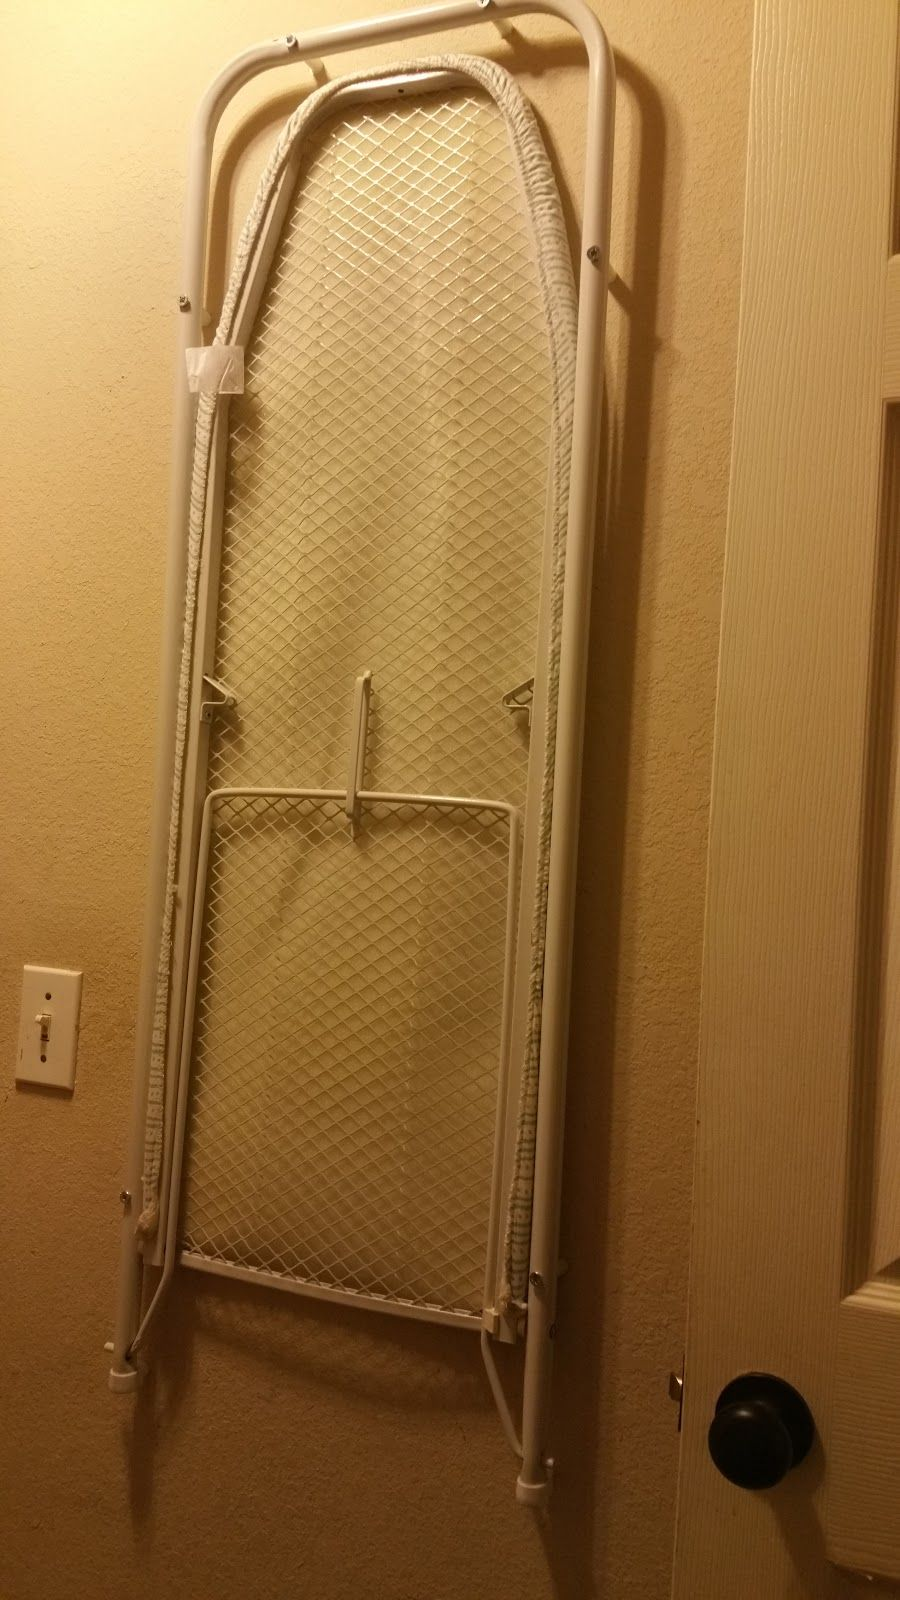 Diy Wall Mounted Ironing Board Estimated Time Of Project 30min 1hr Depending On Your Proficienc Wall Mounted Ironing Board Mounted Ironing Boards Diy Wall